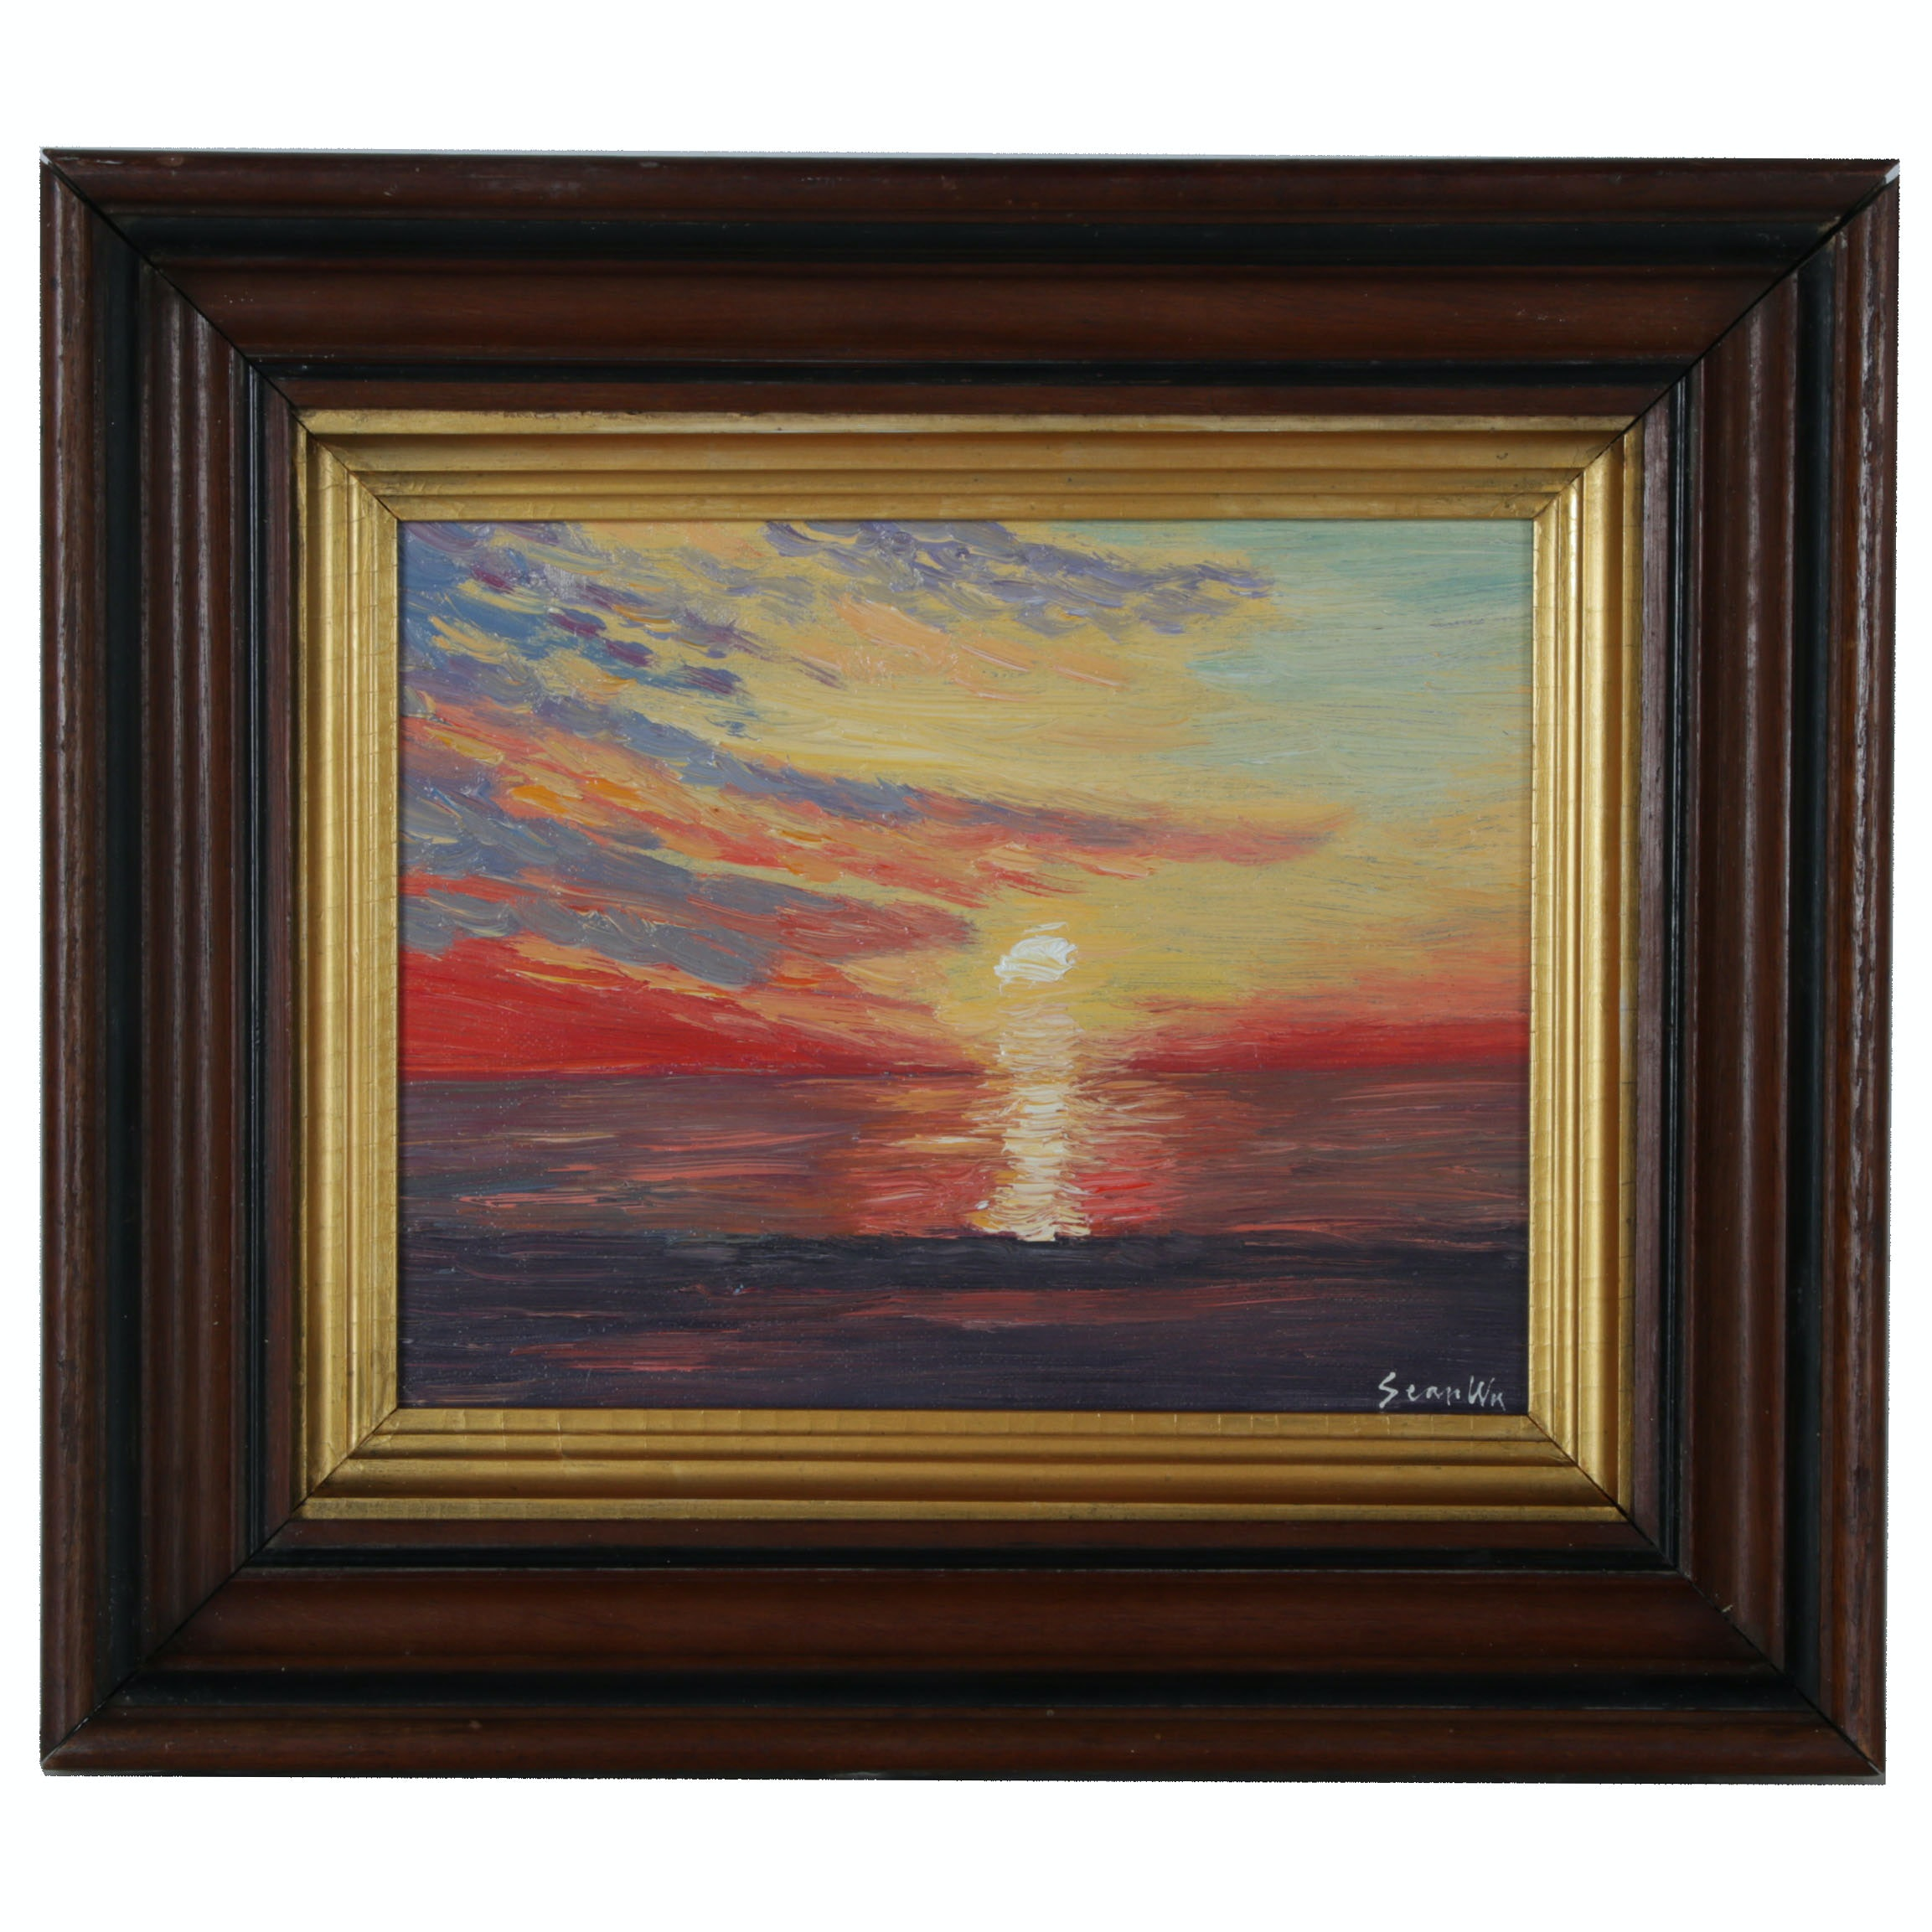 Sean Wu Oil Painting of Sunset